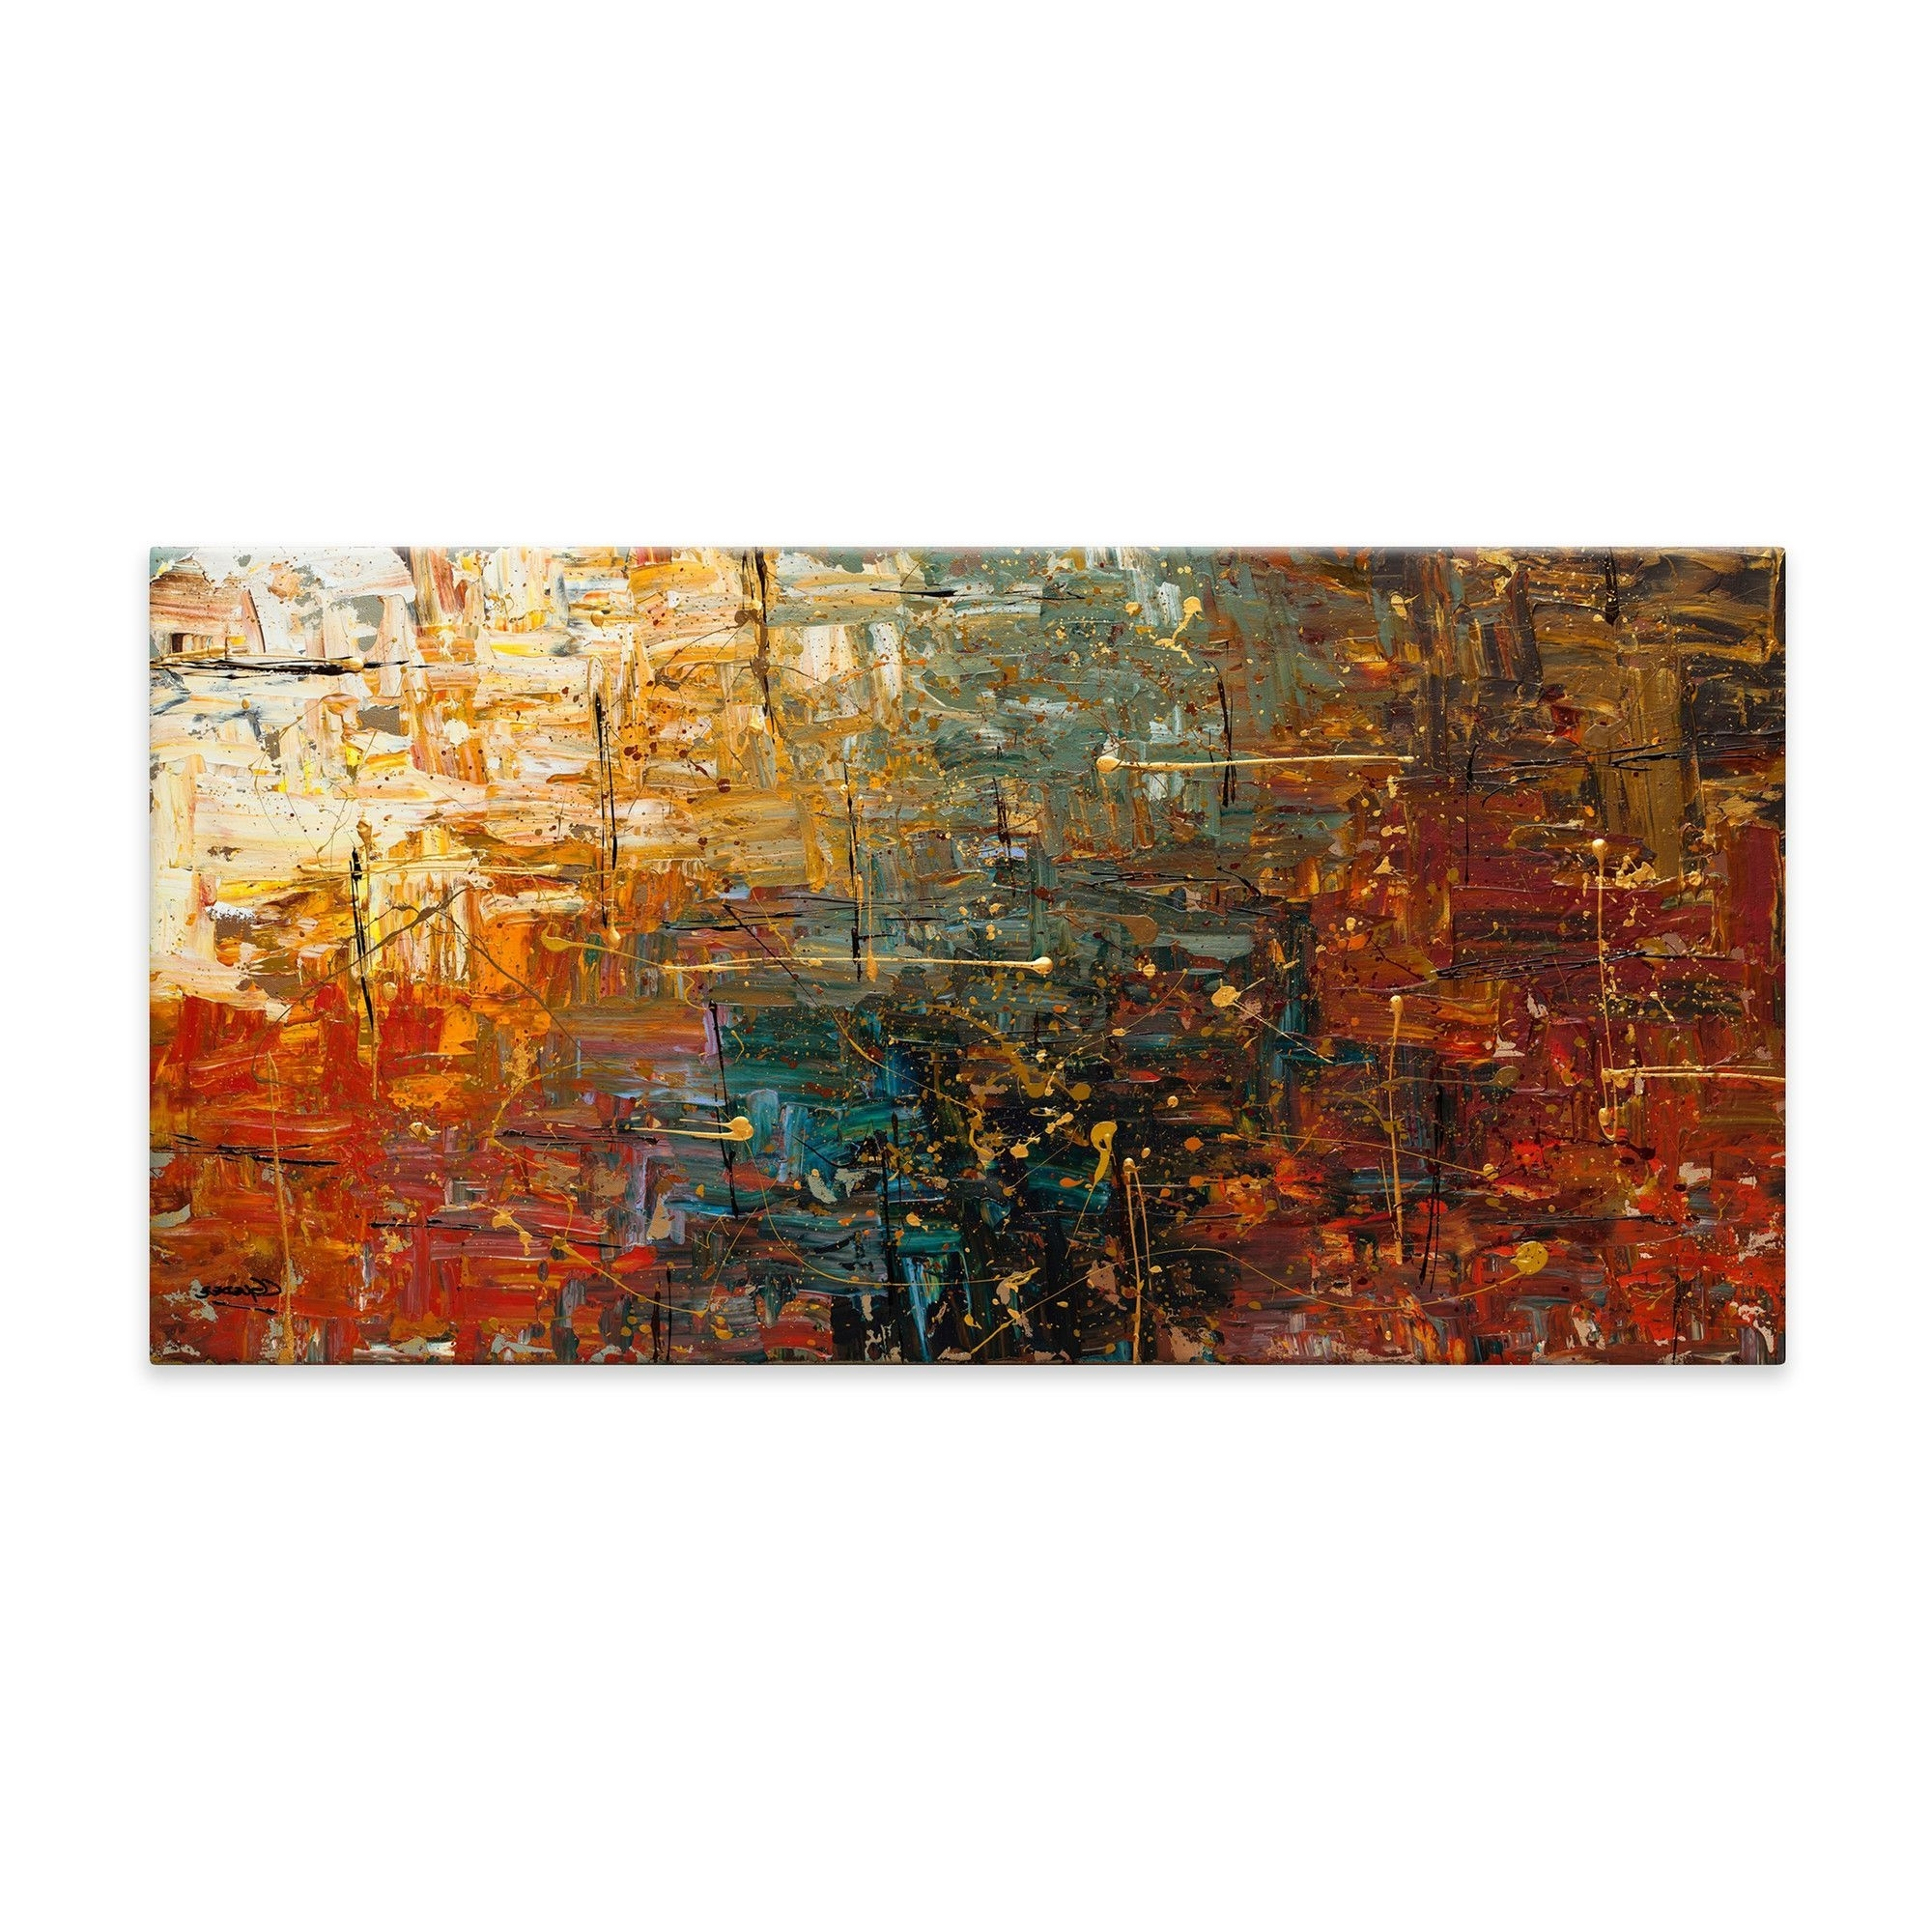 Canvas Wall Art Pairs In Trendy Gold Splashcarmen Guedez Painting Print On Canvas (Gallery 4 of 15)